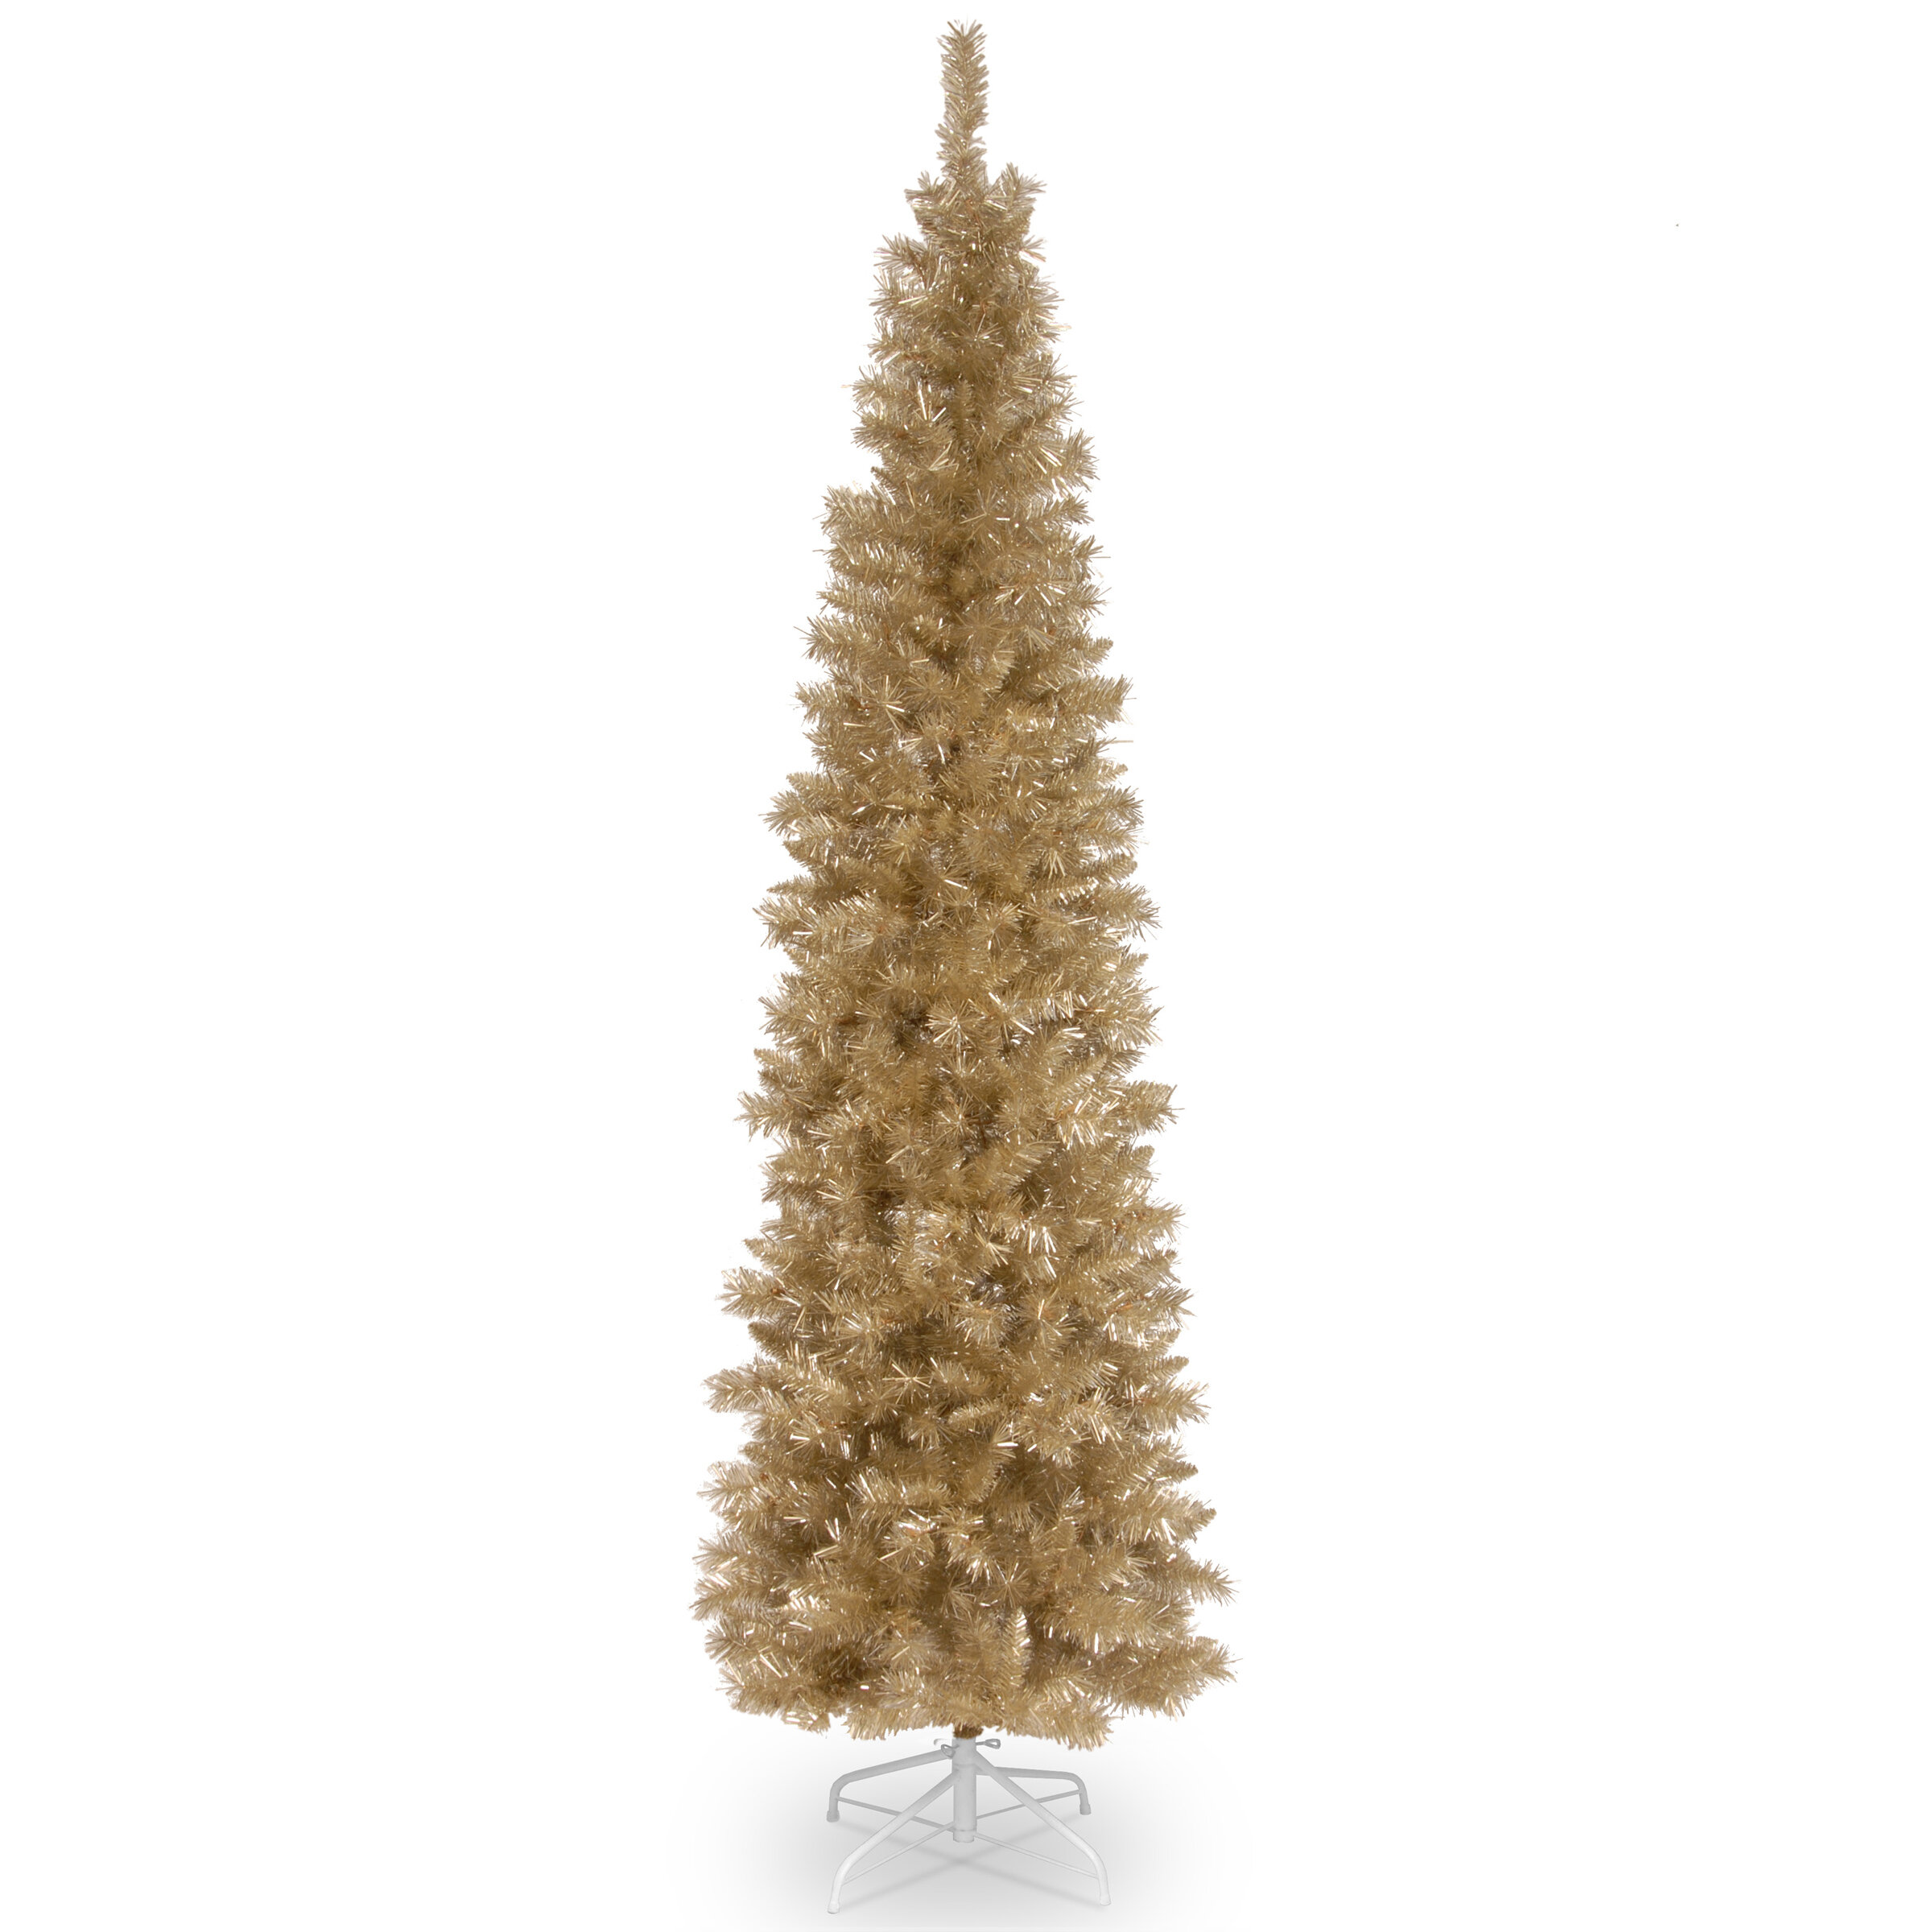 Champagne Gold 7 Fir Artificial Christmas Tree With Metal Stand Reviews Joss Main